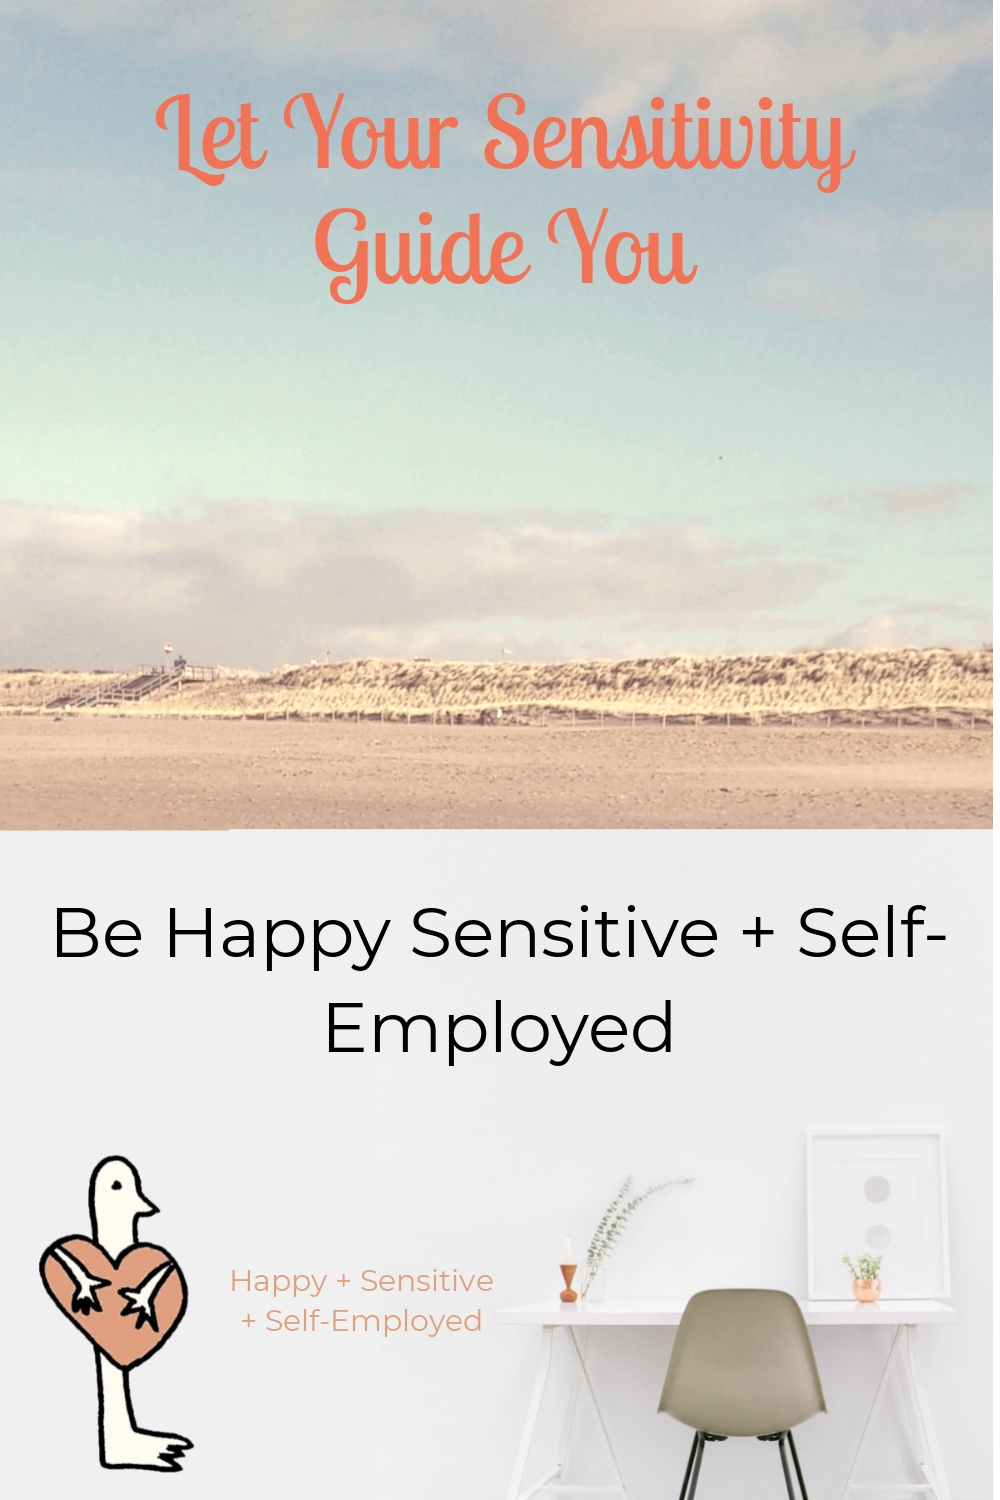 Let Your Sensitivity Guide You